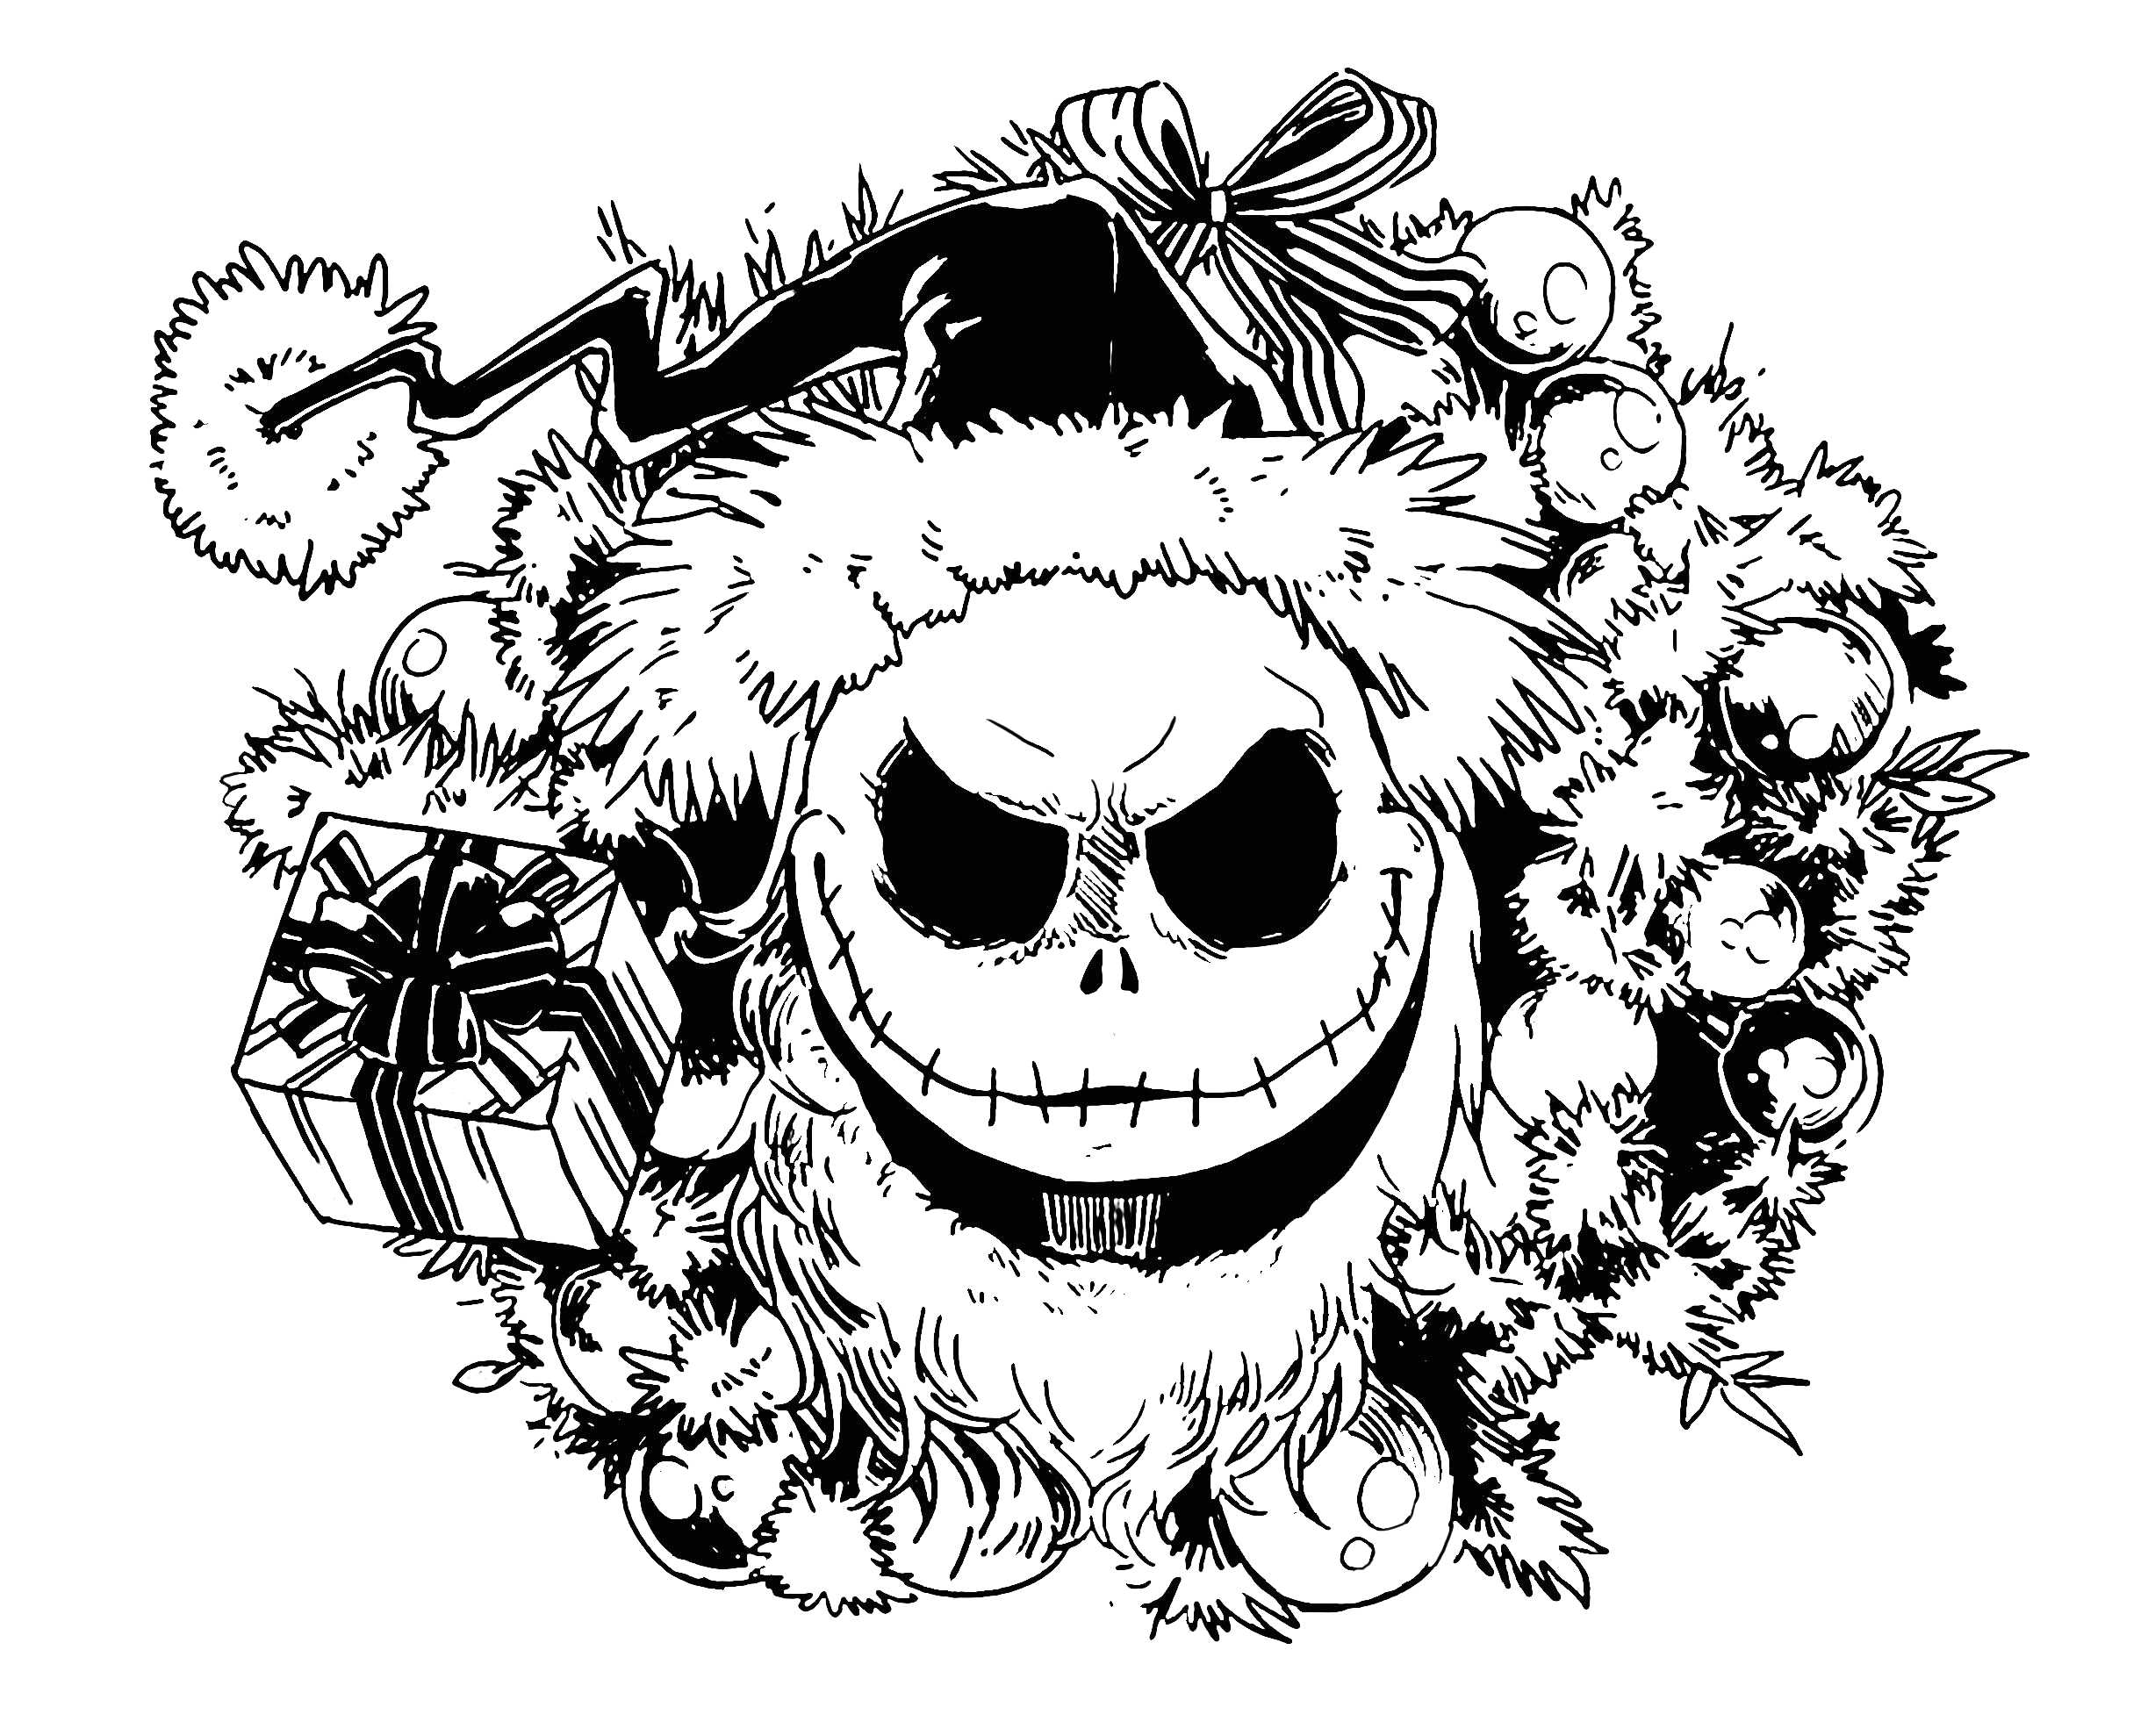 Nightmare before Christmas Coloring Pages for Adults Nighmare before Christmas Christmas Adult Coloring Pages